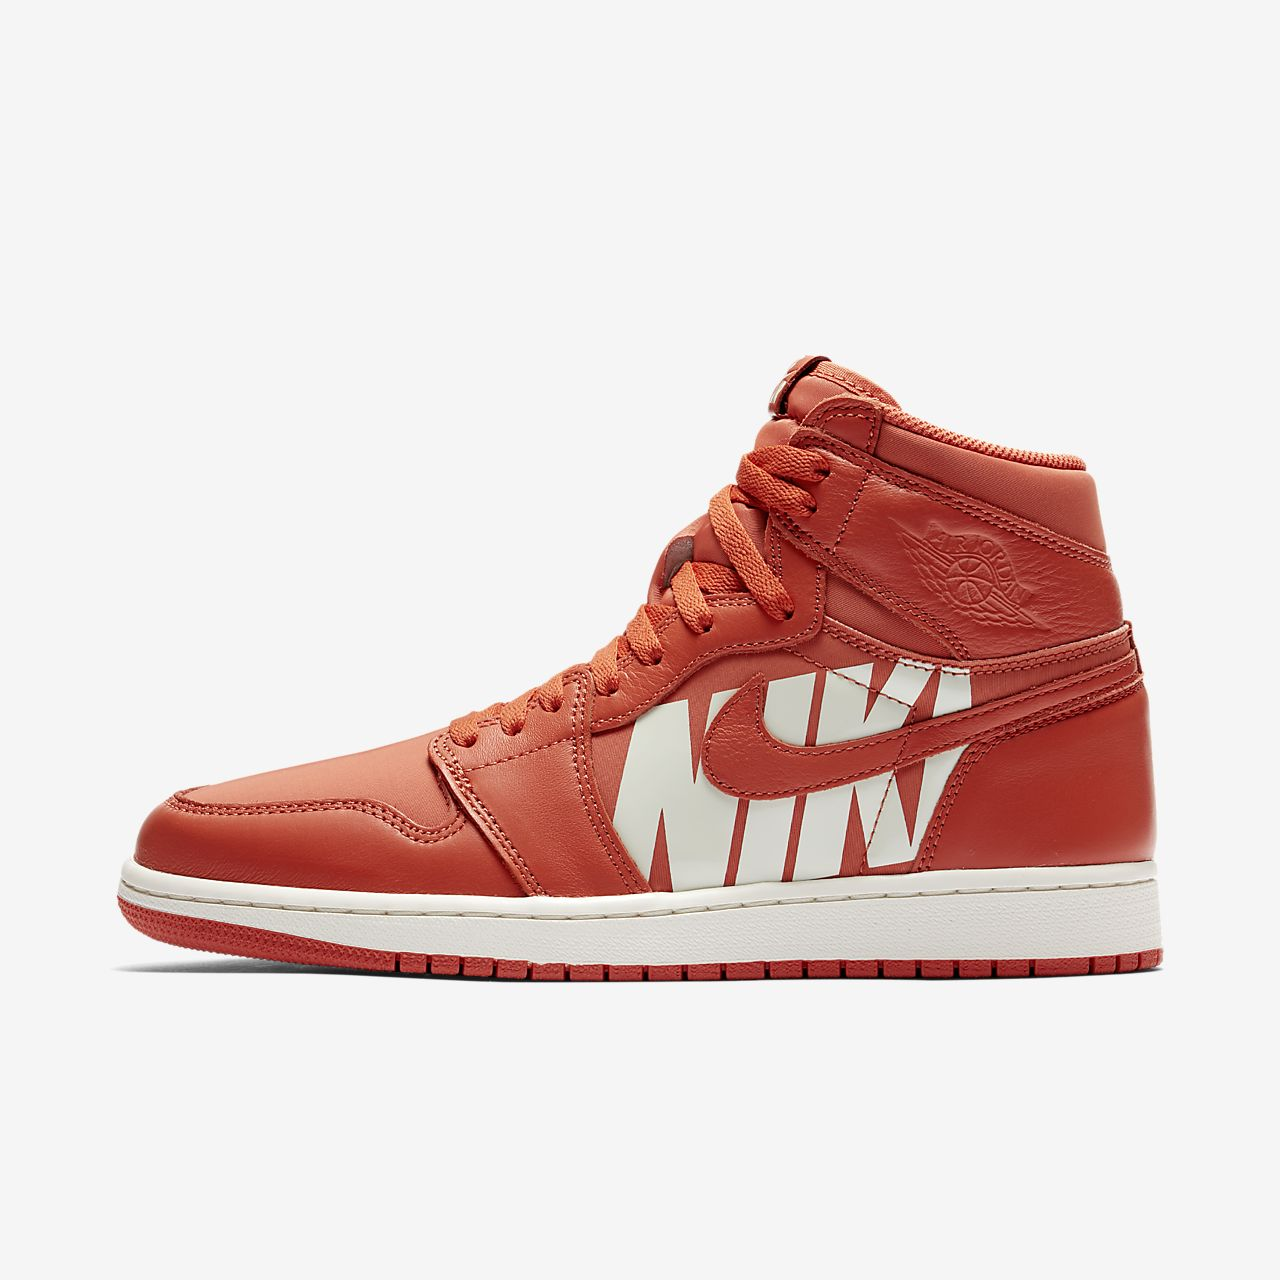 bd18798fc9f29b Air Jordan 1 Retro High OG Shoe. Nike.com ZA